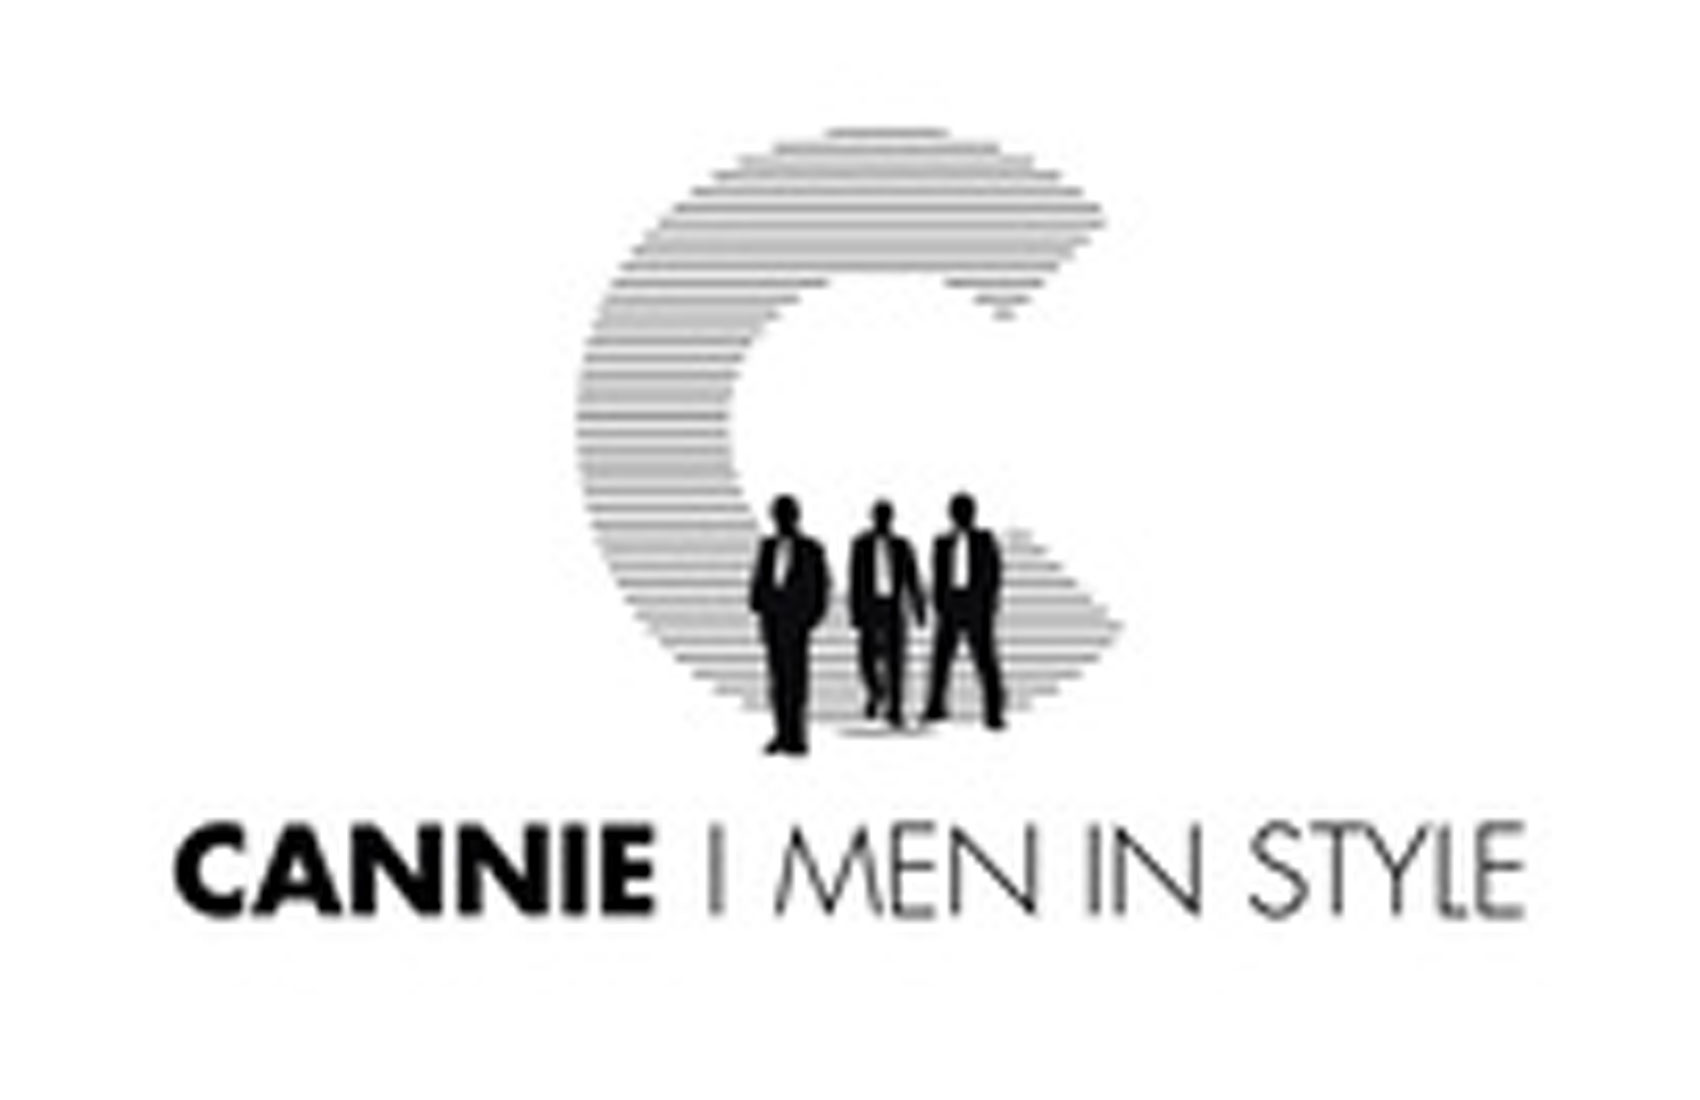 Cannie - Men in style